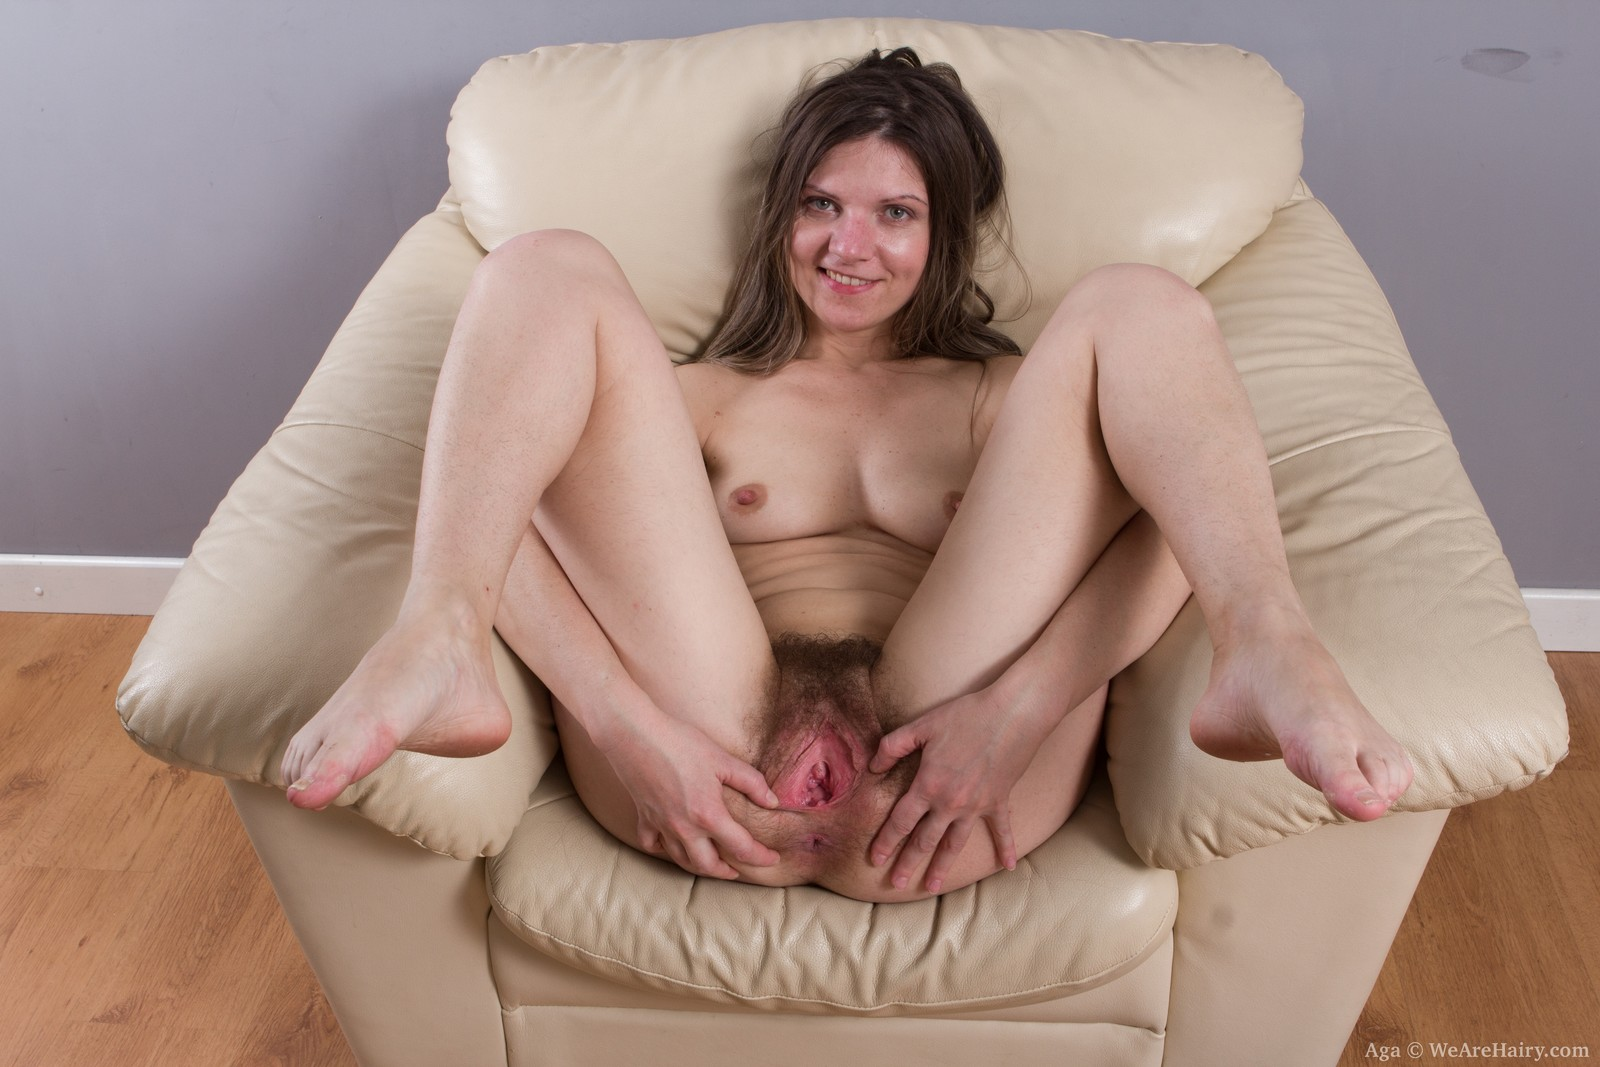 open Legs hairy wide